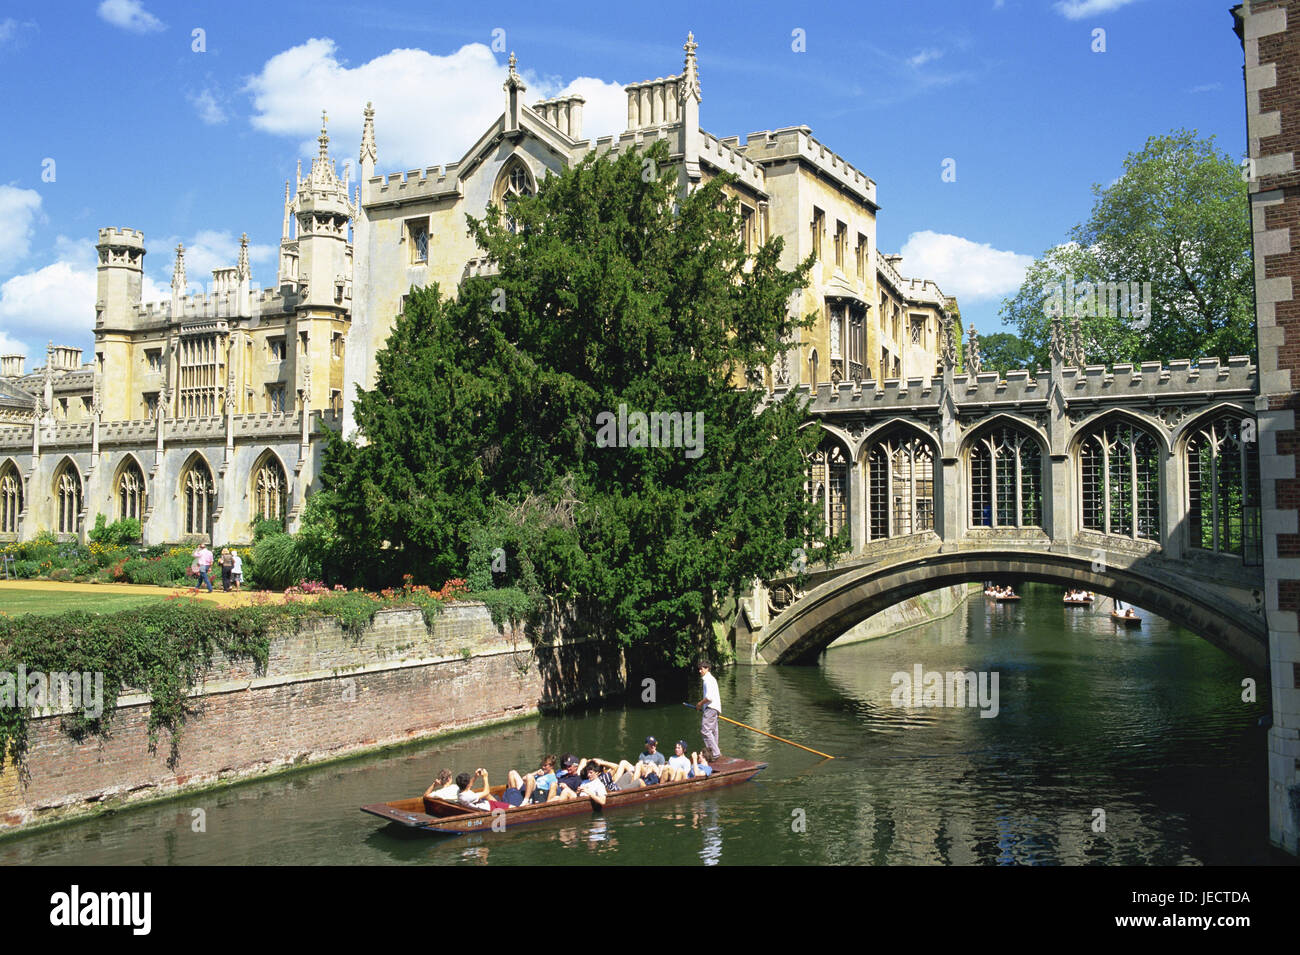 Great Britain, England, Cambridgeshire, Cambridge, River Cam, Bridge of Sighs, Saint John's college, boat, tourist, - Stock Image